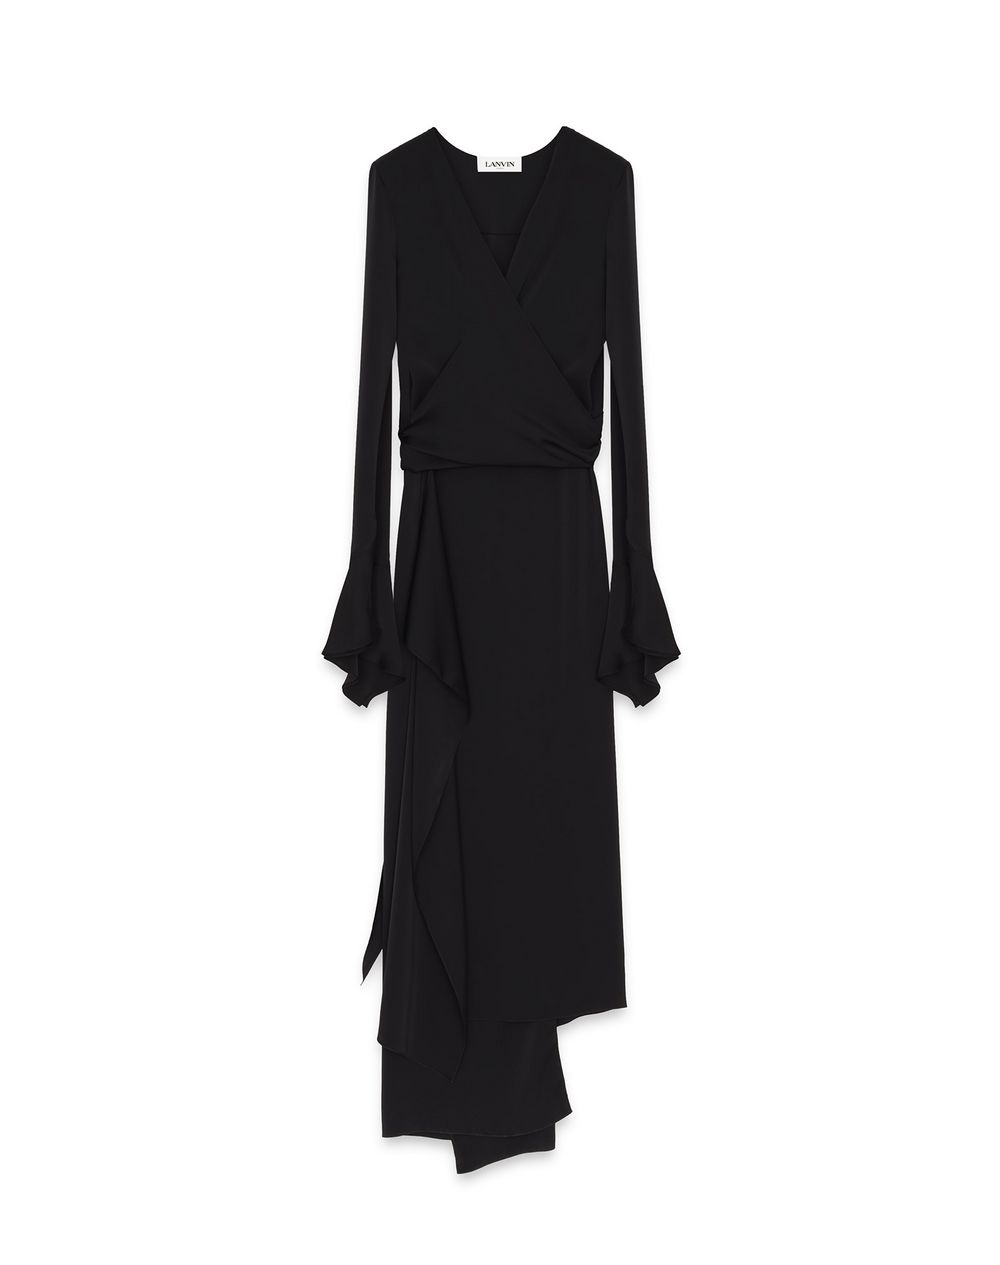 ASYMMETRIC LONG WRAP-OVER DRESS - Lanvin